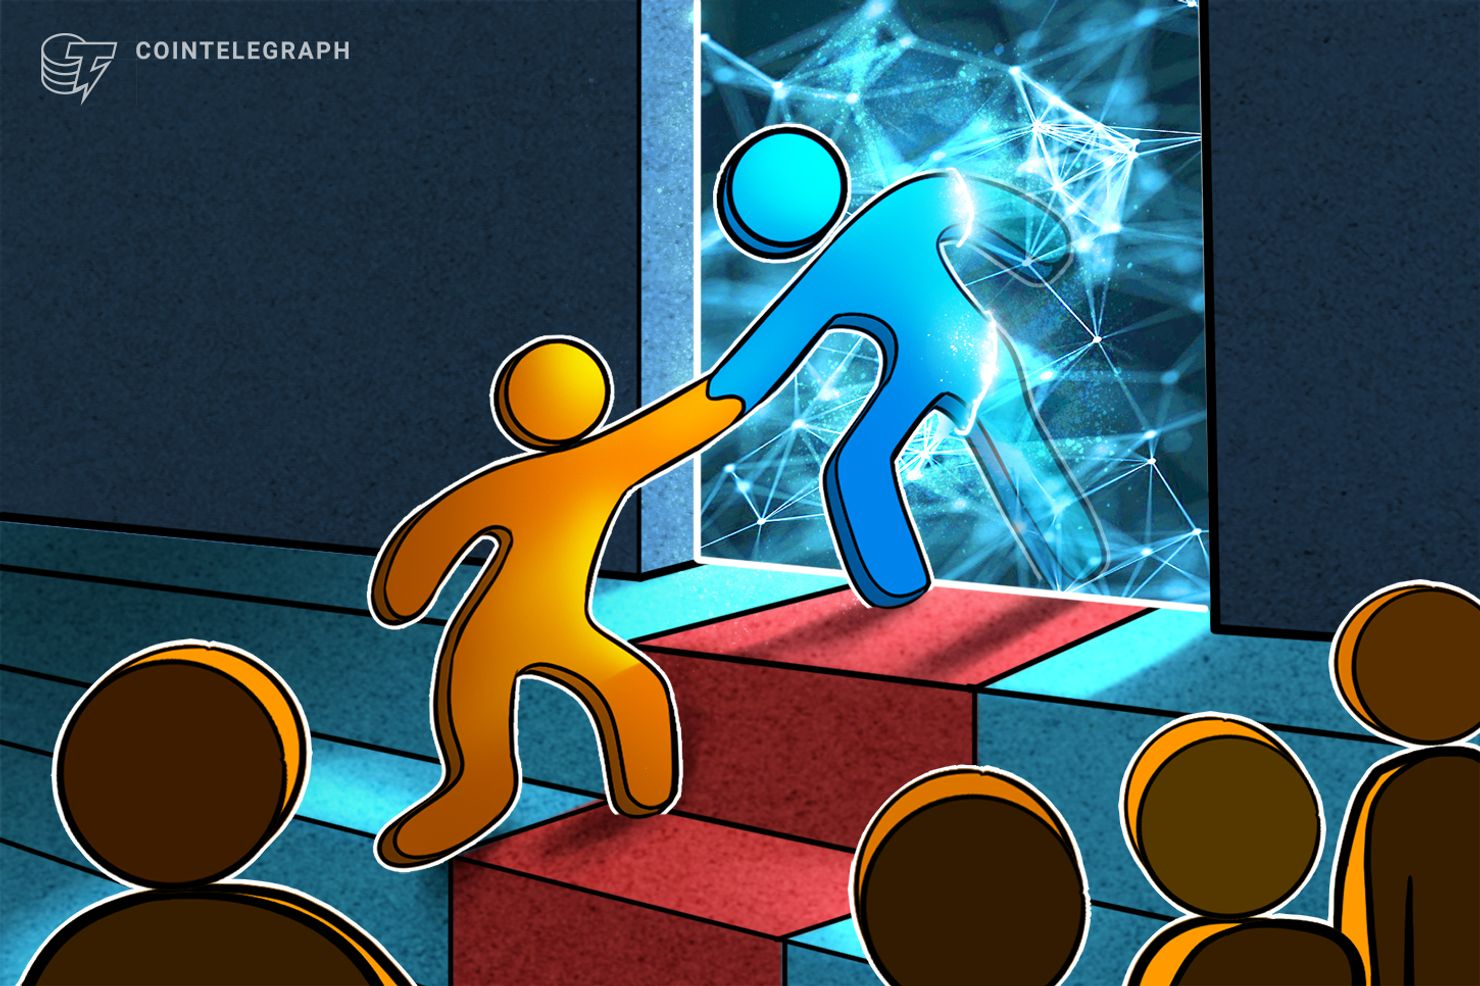 US Crypto Exchange Coinbase Adds Support for Zcash on Retail Platform and Mobile Apps